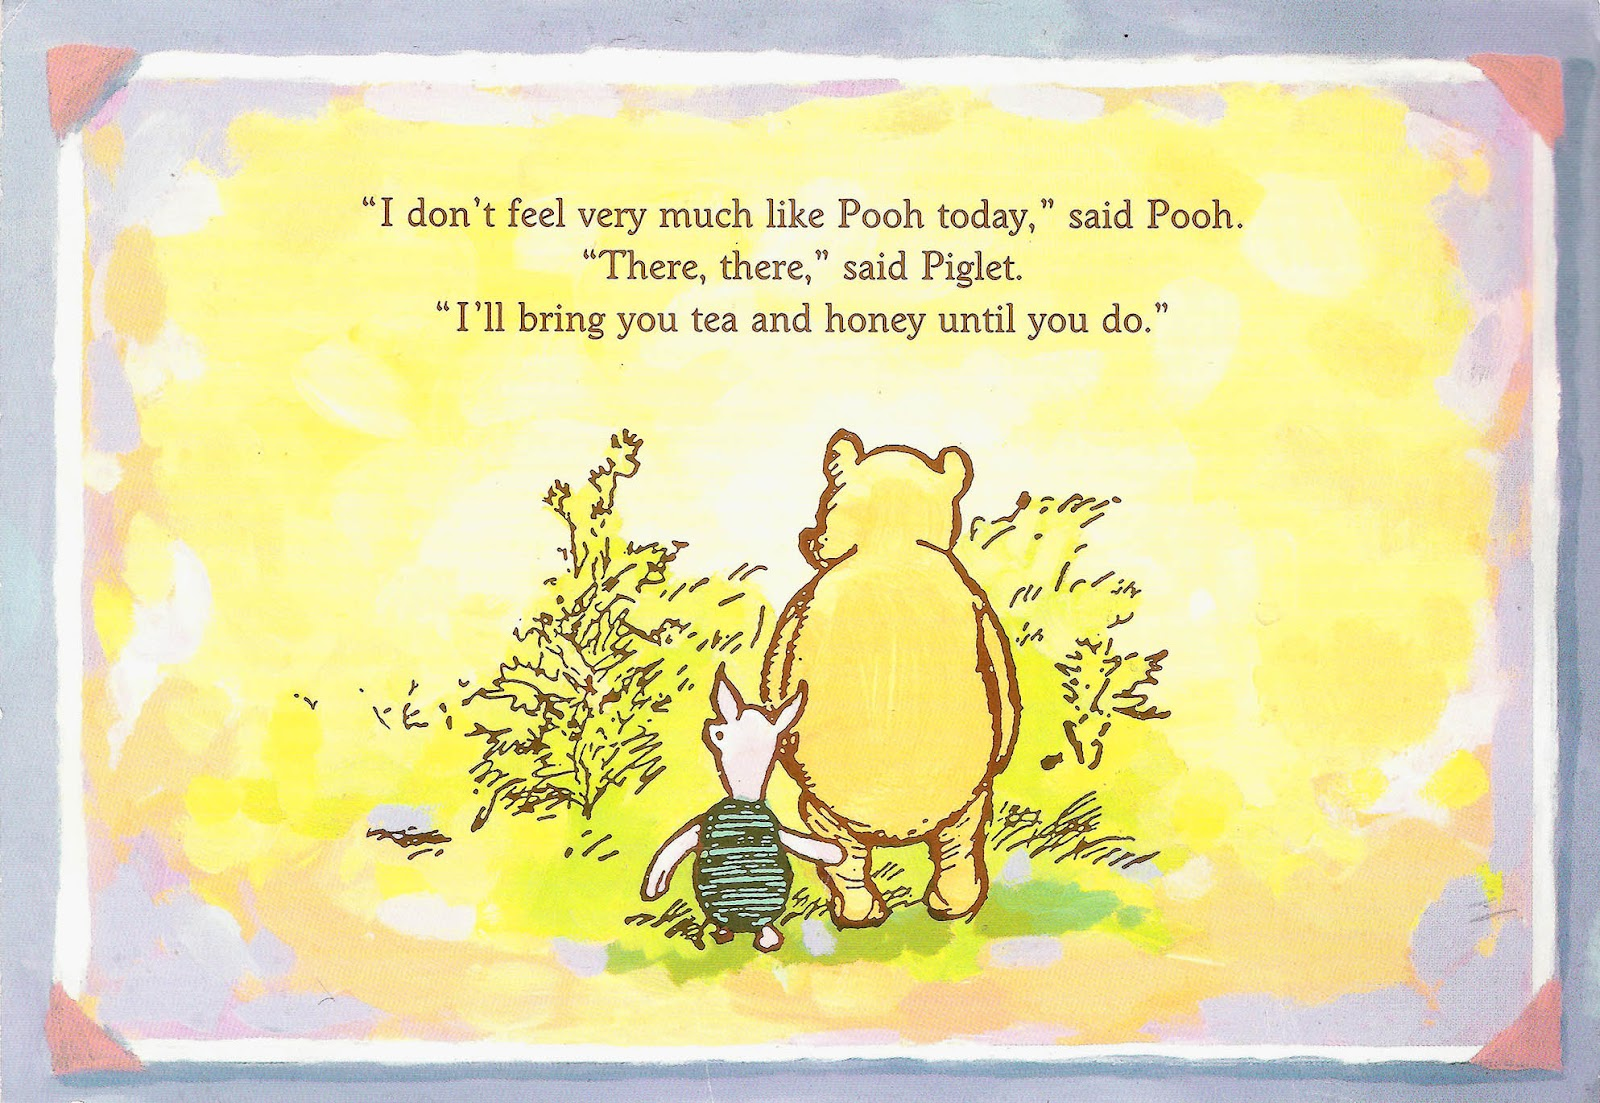 Winnie The Pooh Quote About Friendship Friendship Quotes Pooh Piglet Pooh And Piglet Friendship Quotes